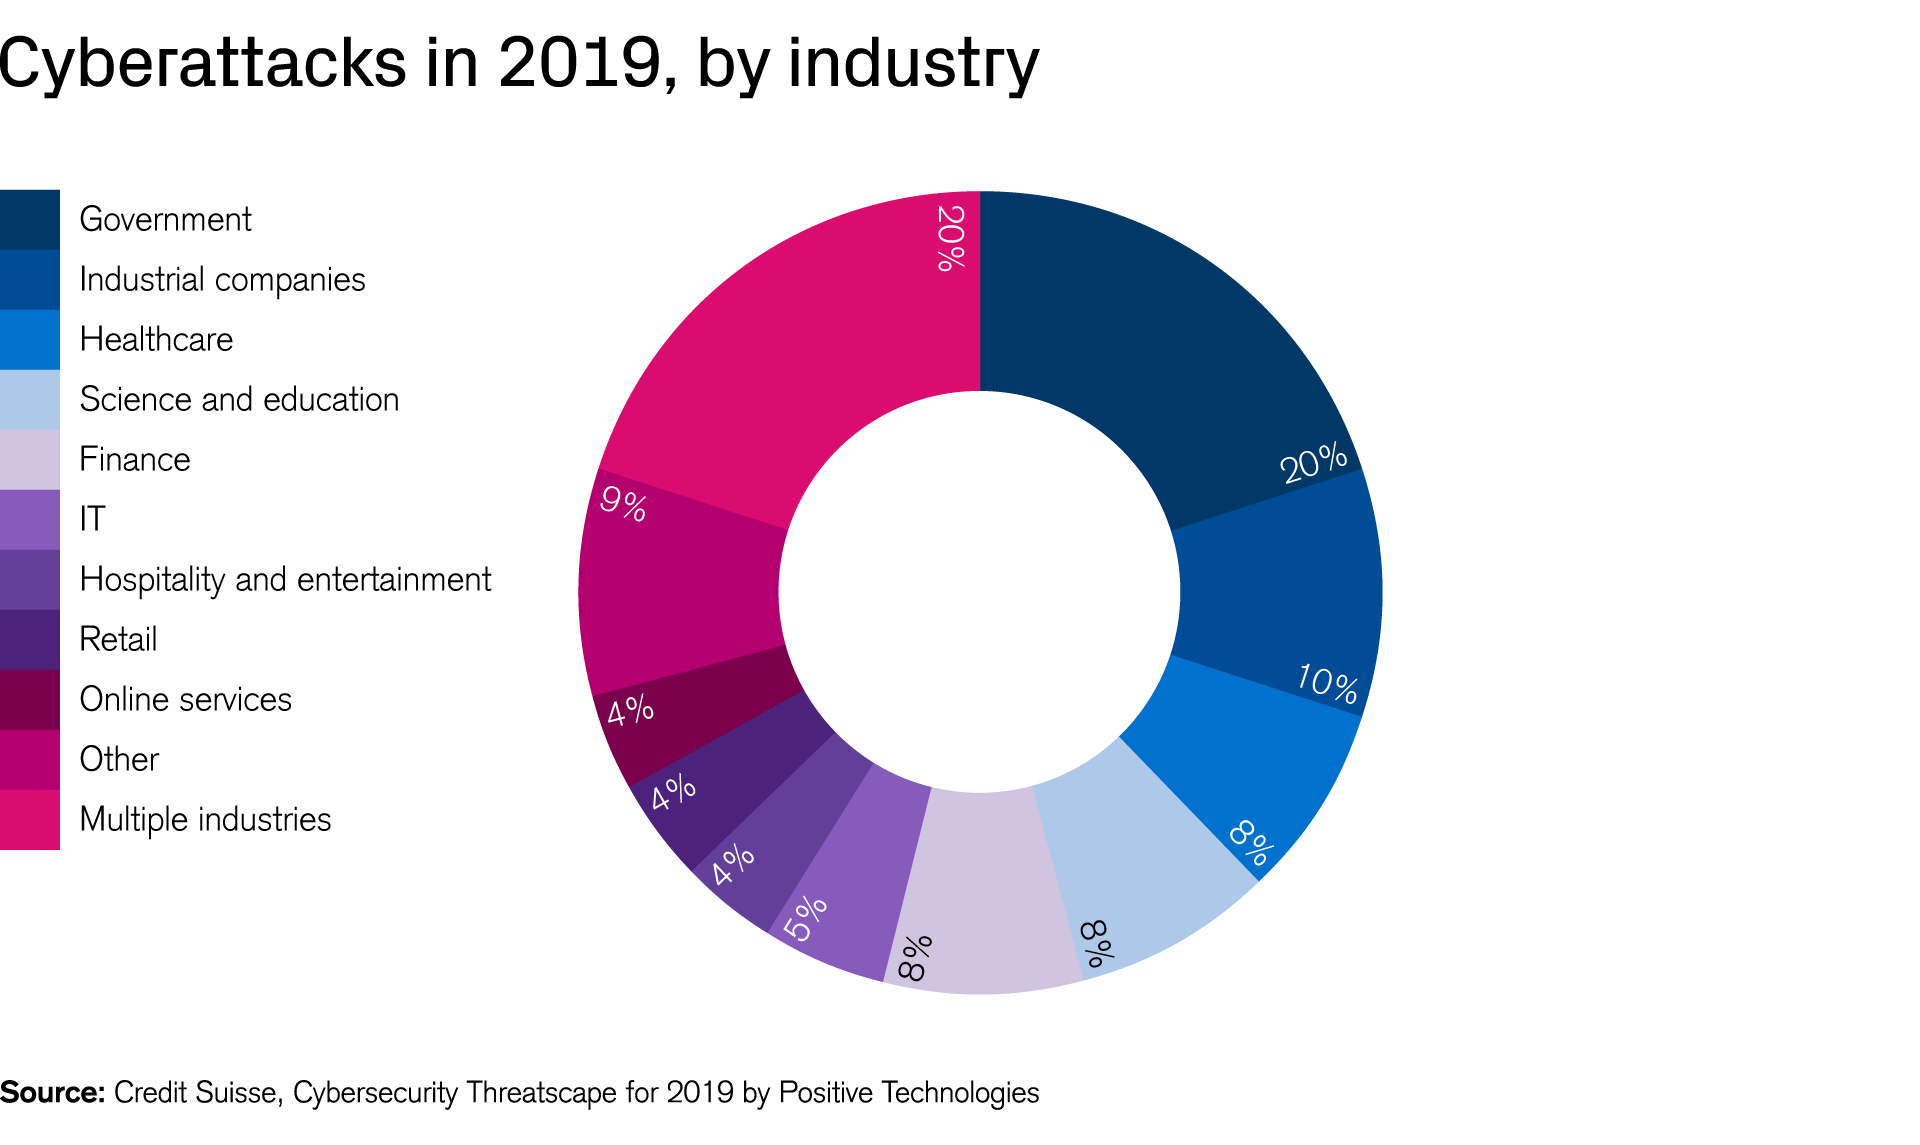 Cyberattacks in 2019, by industry